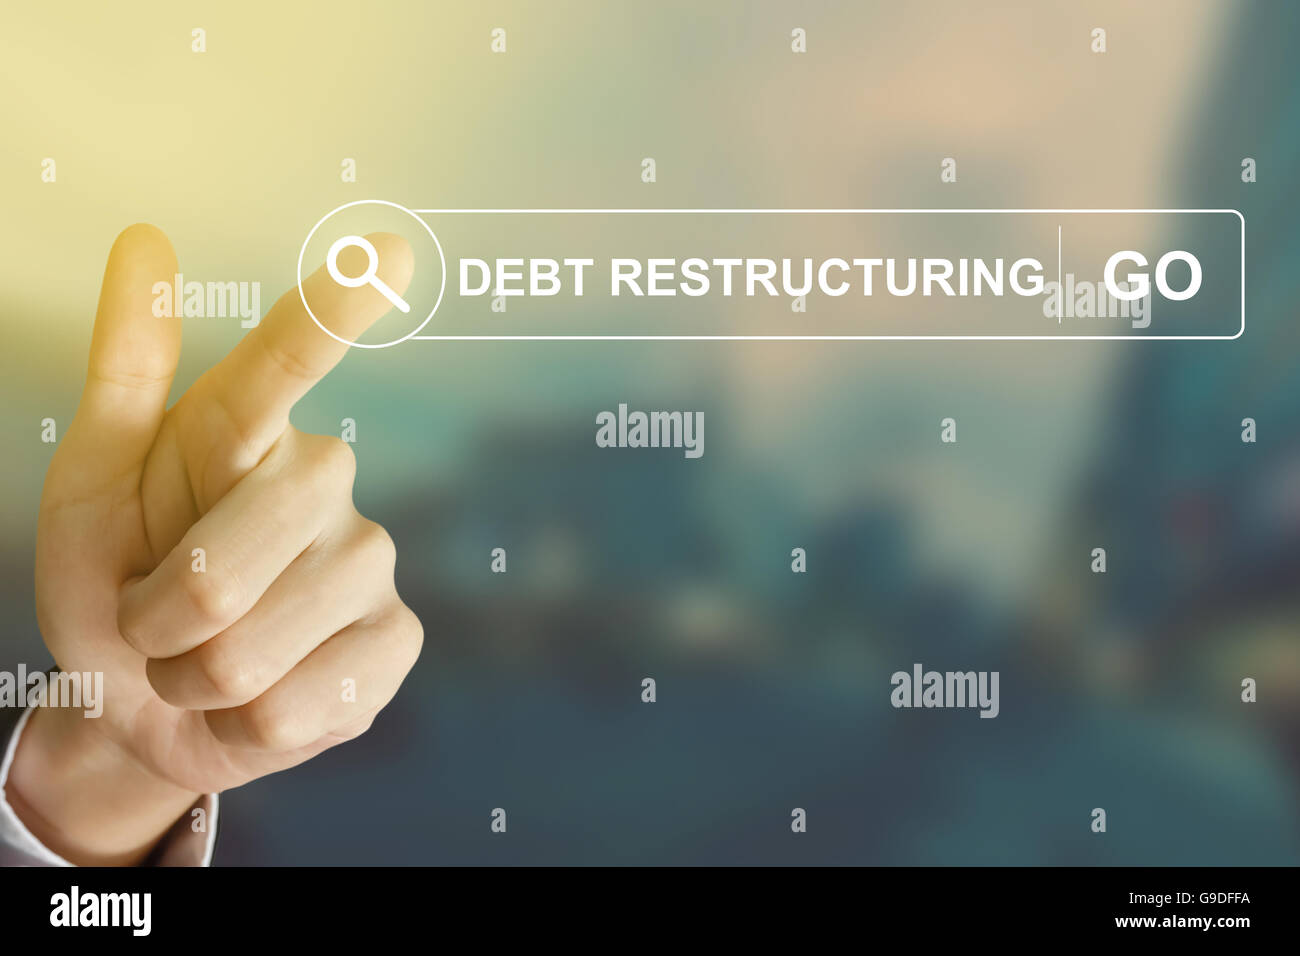 business hand clicking debt restructuring button on search toolbar with vintage style effect - Stock Image